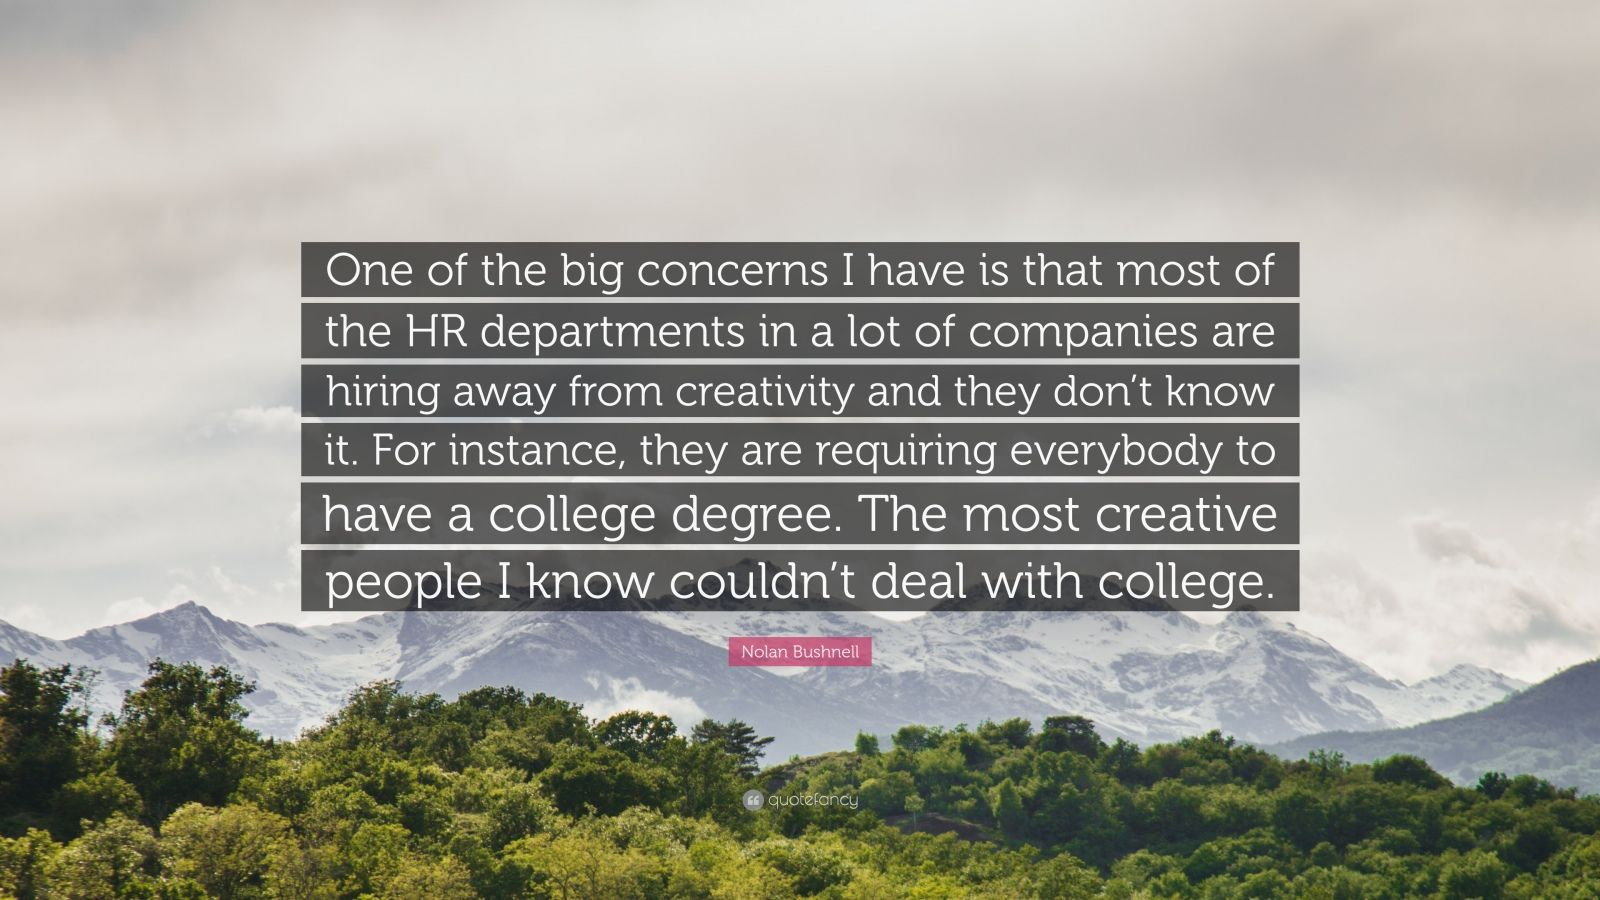 """Nolan Bushnell Quote: """"One of the big concerns I have is that most of the HR departments in a lot of companies are hiring away from creativity and they don't know it. For instance, they are requiring everybody to have a college degree. The most creative people I know couldn't deal with college."""""""